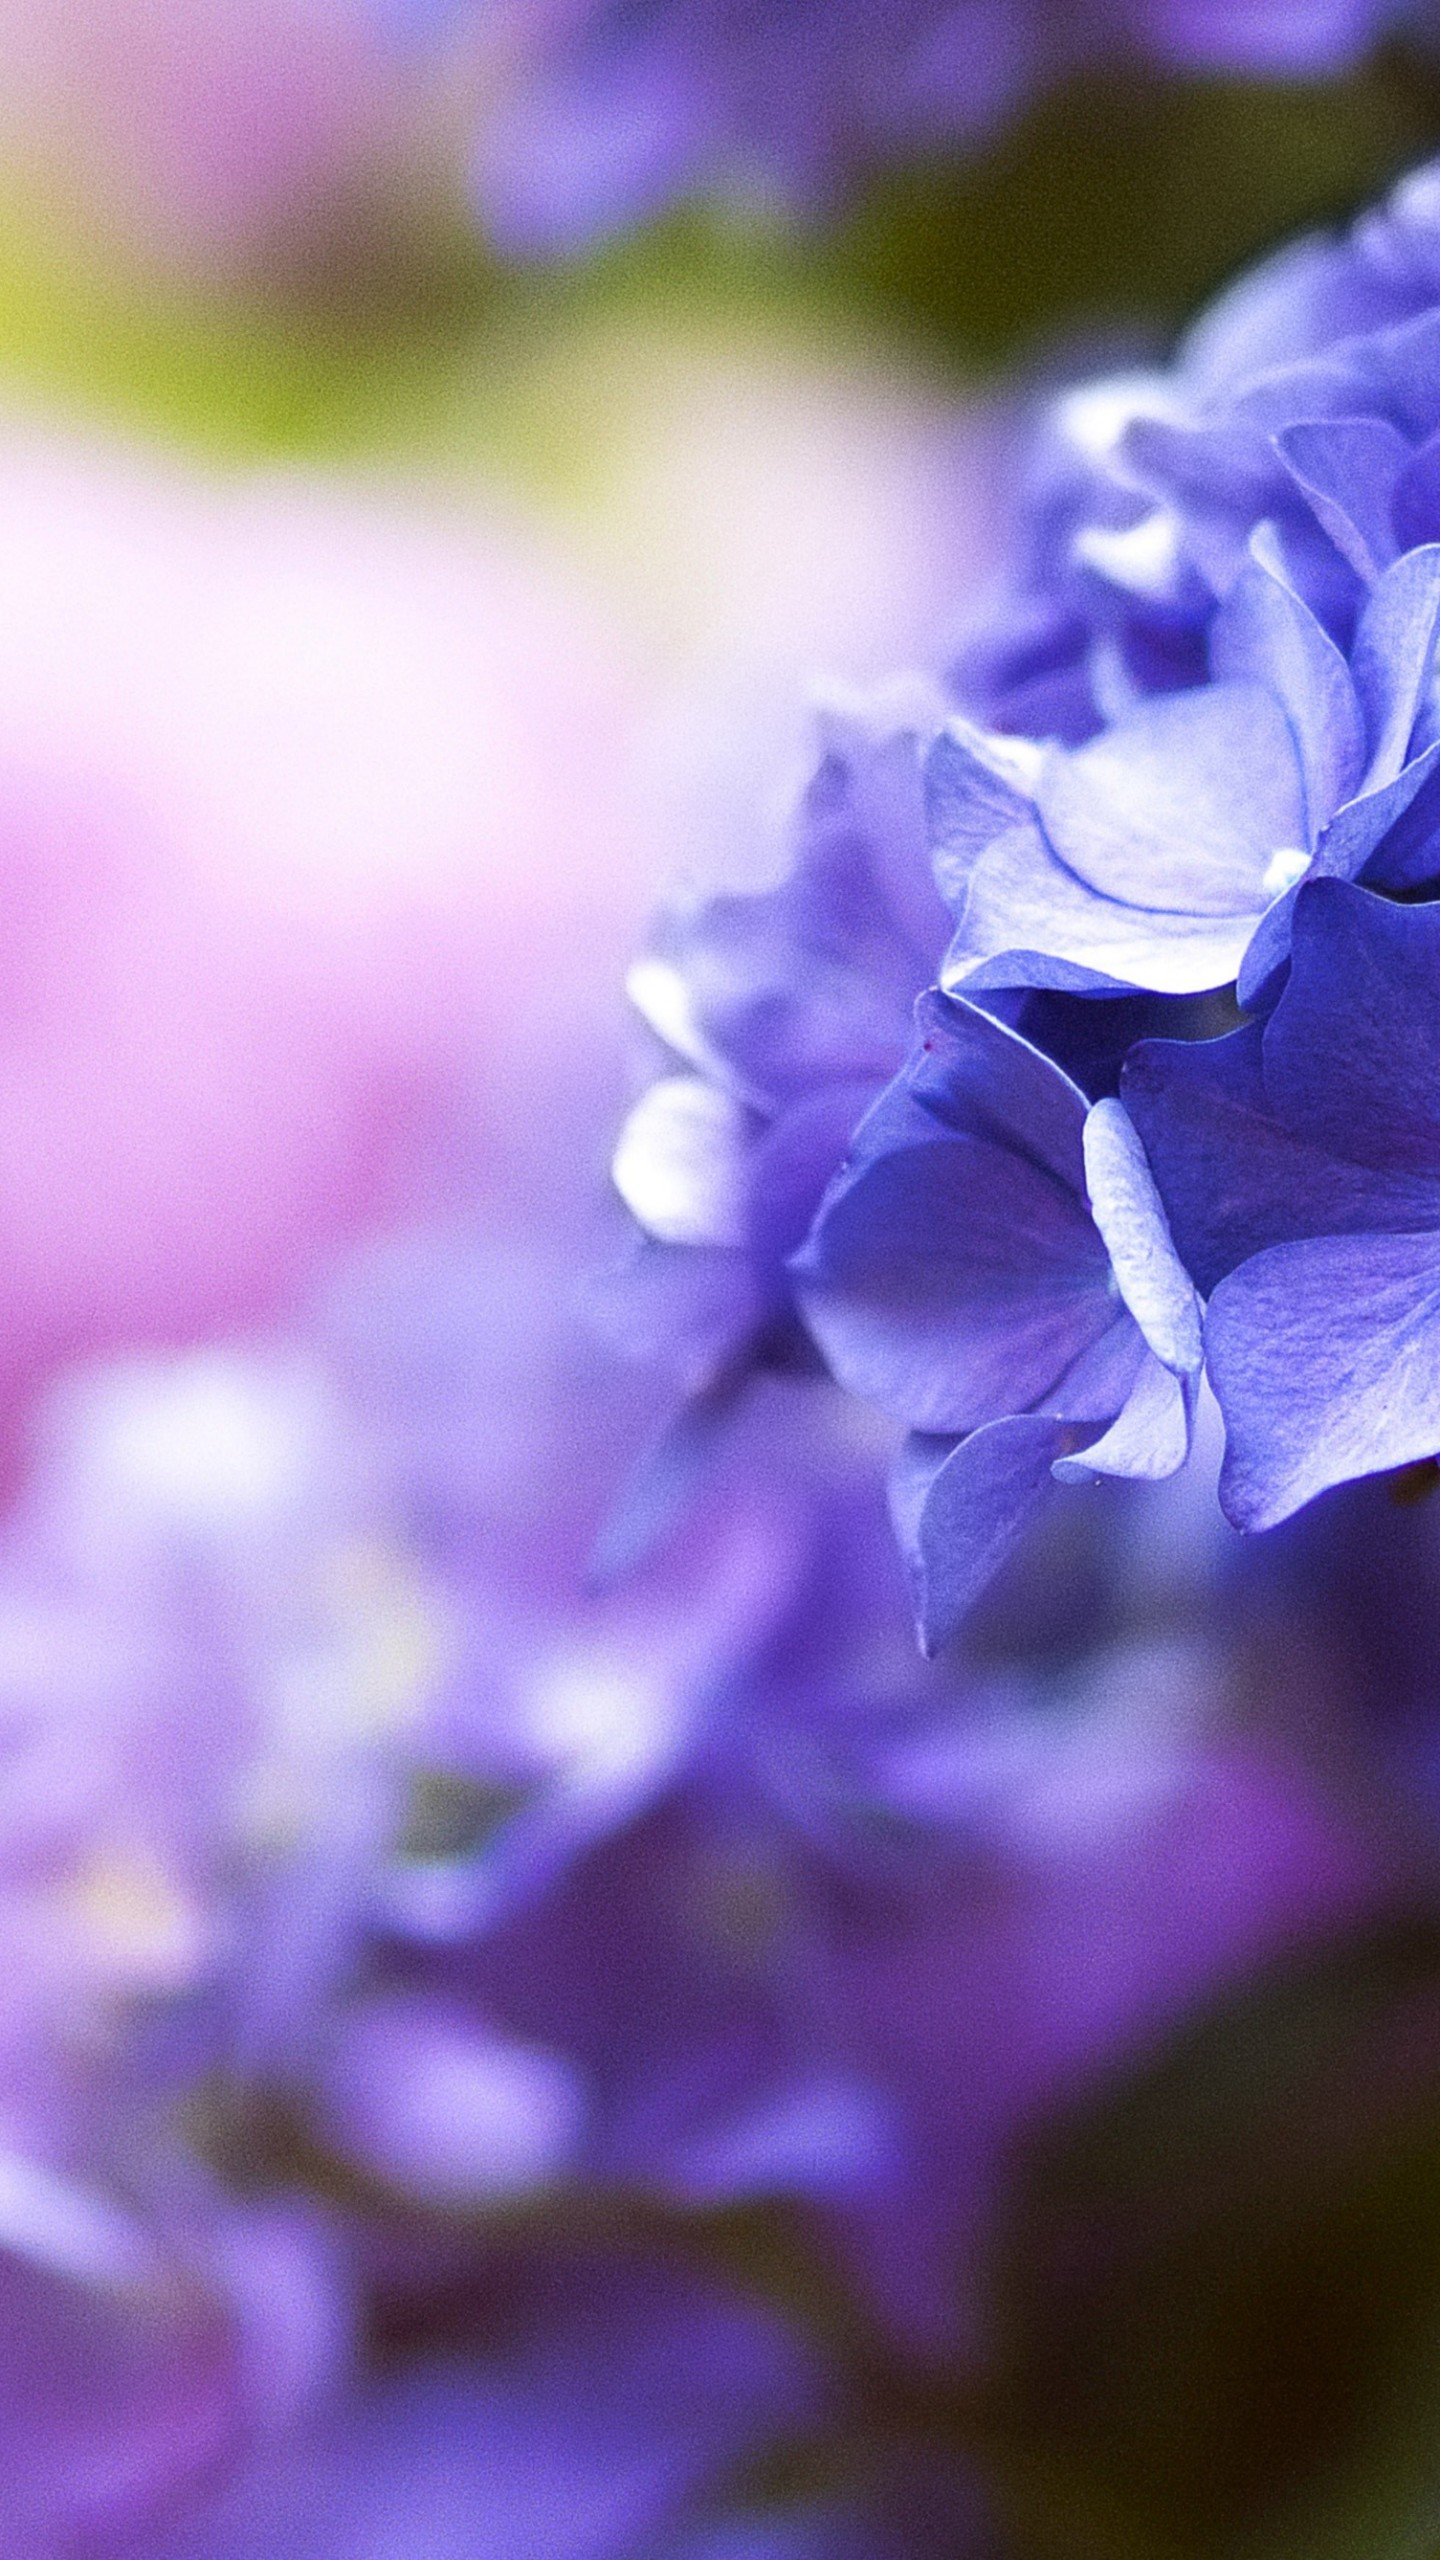 Wallpaper Beautiful Flowers 5k 4k Wallpaper Blue Spring Macro